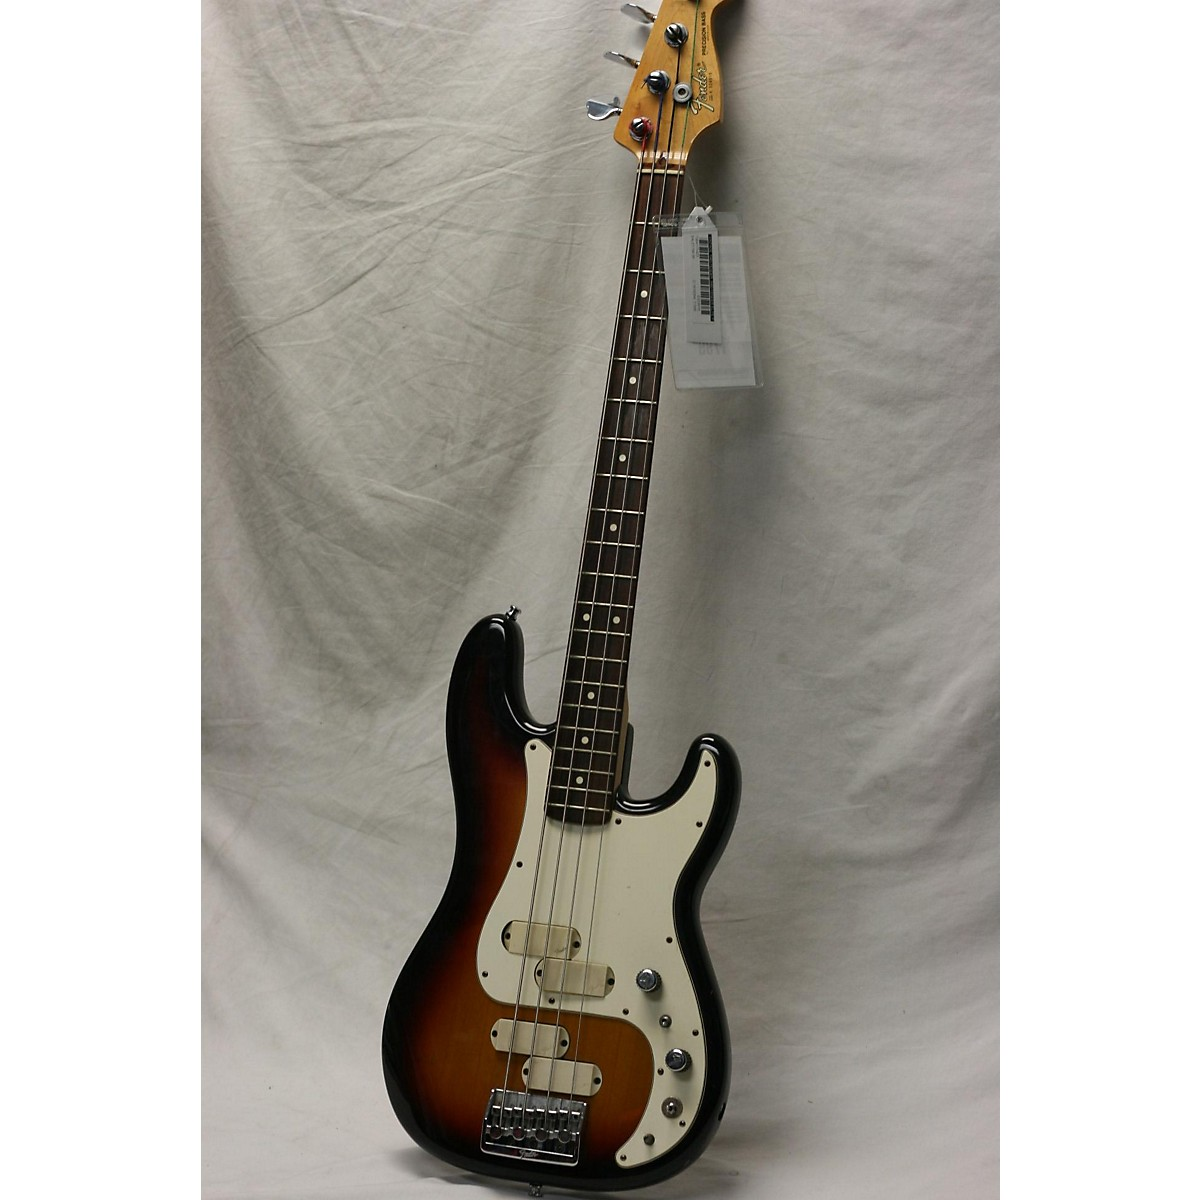 Fender 1983 1983 FENDER ELITE PRECISION BASS Electric Bass Guitar